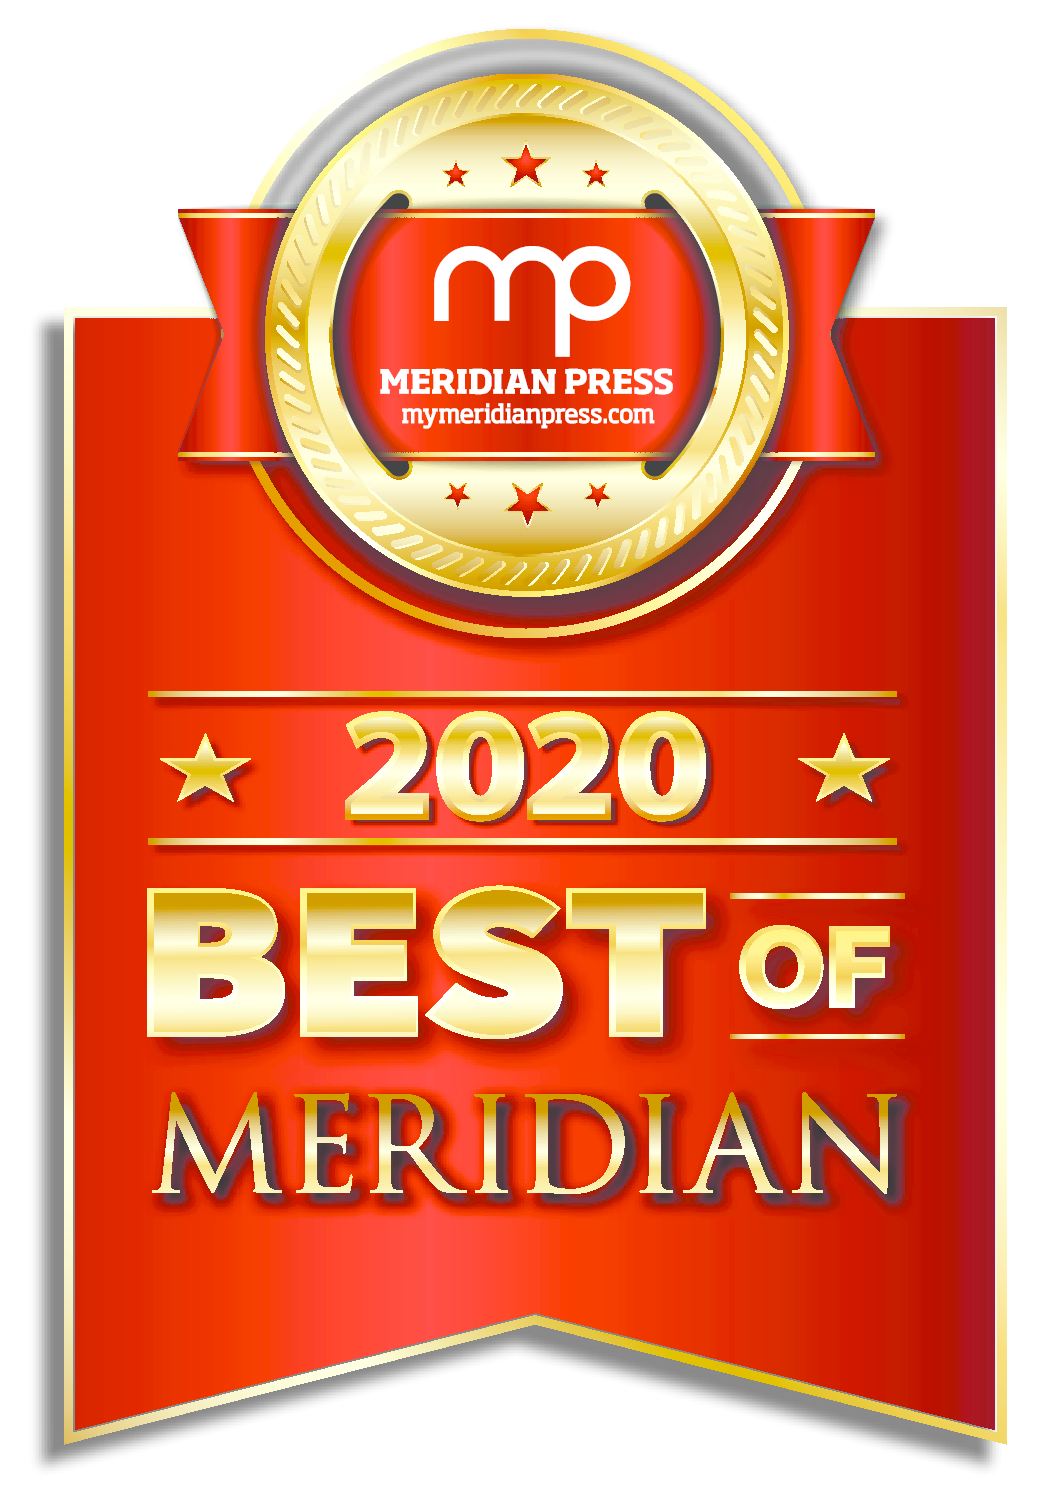 2020 Best of Meridian Nomination